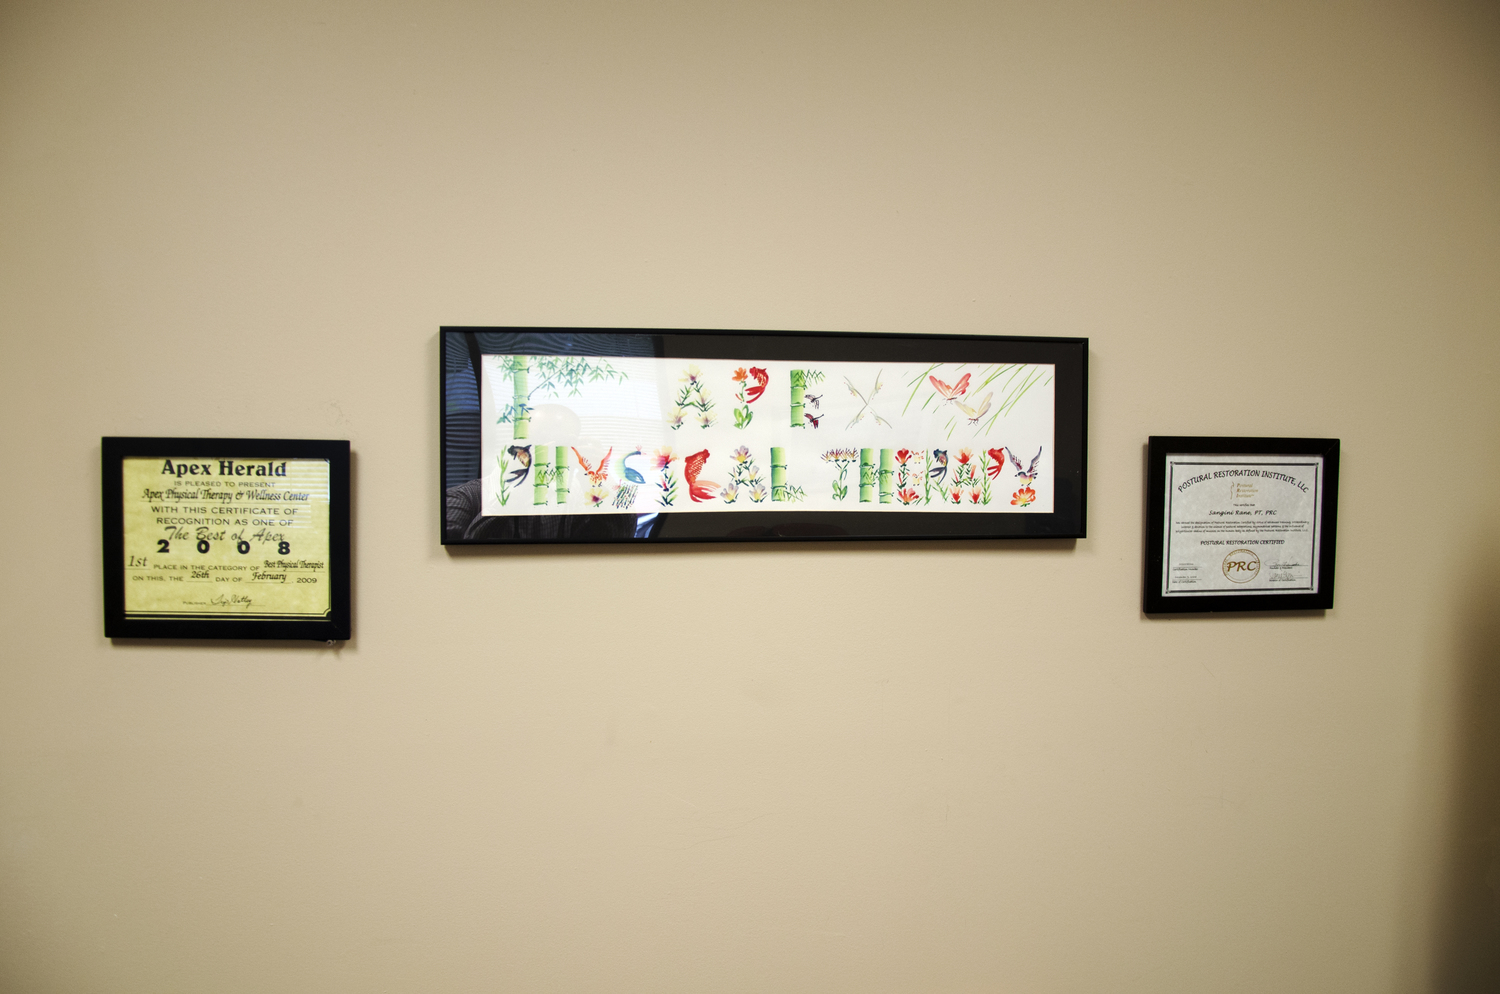 Board nc physical therapy - Apex Pt Postural Restoration Center